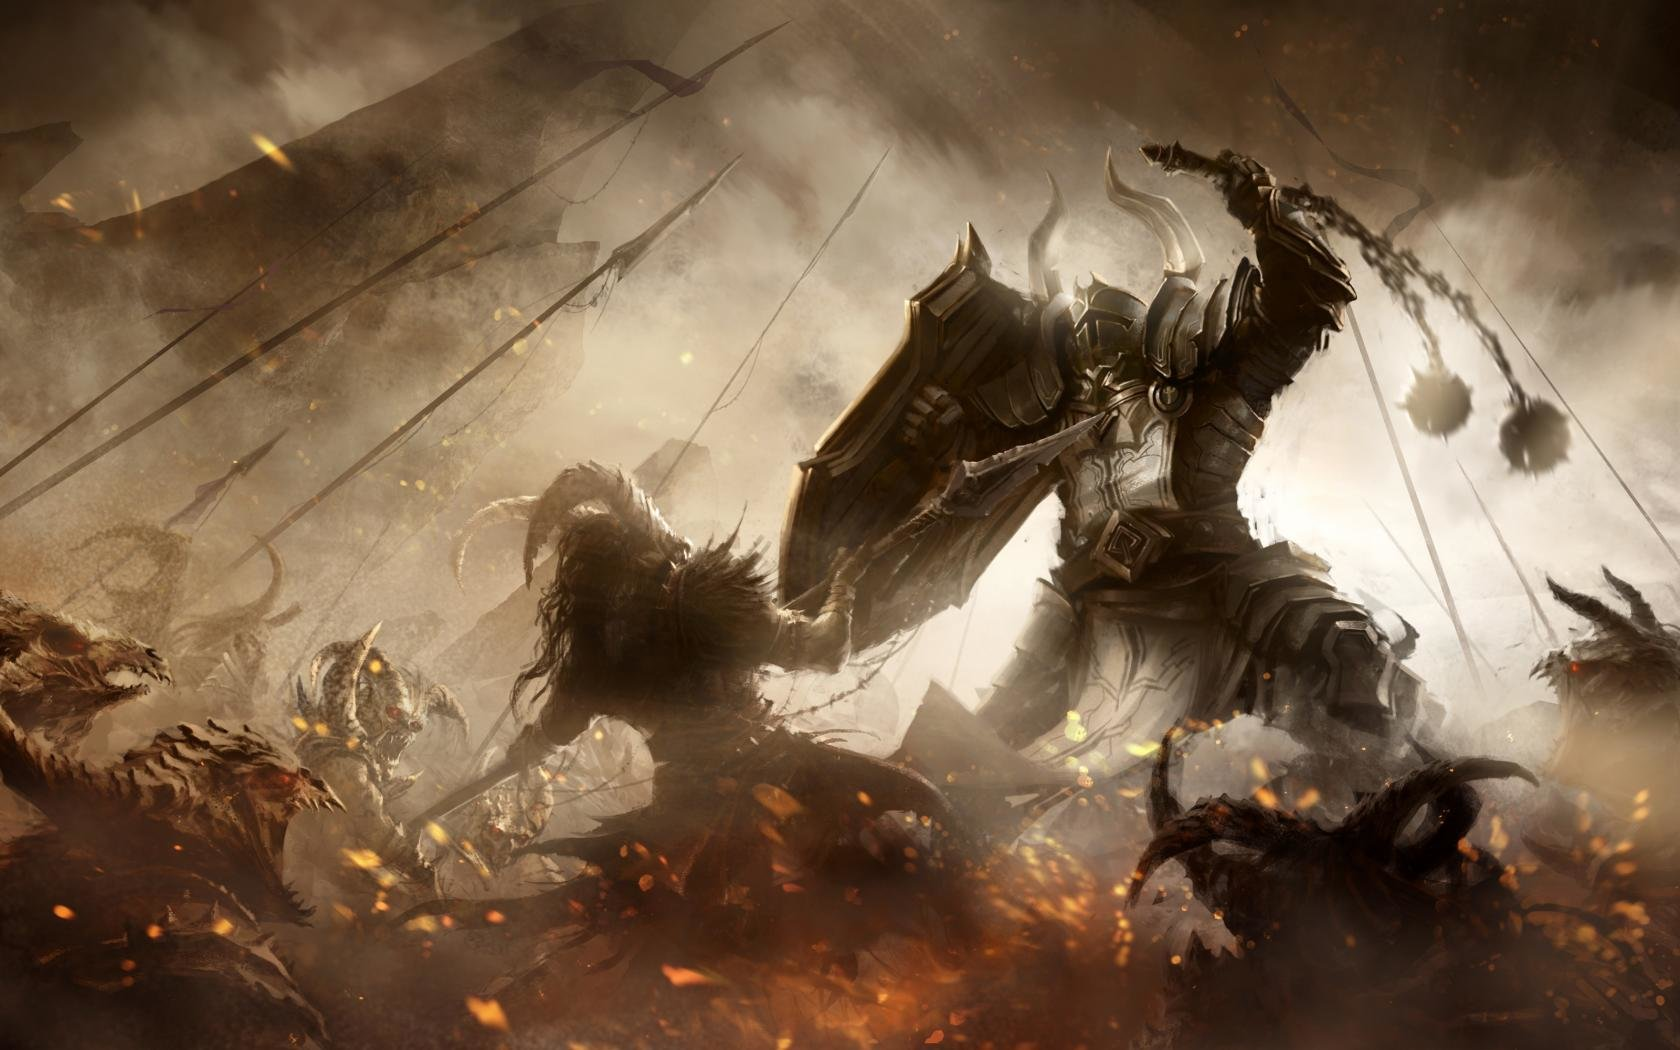 Crusader Diablo 3 Wallpapers 1680x1050 Desktop Backgrounds